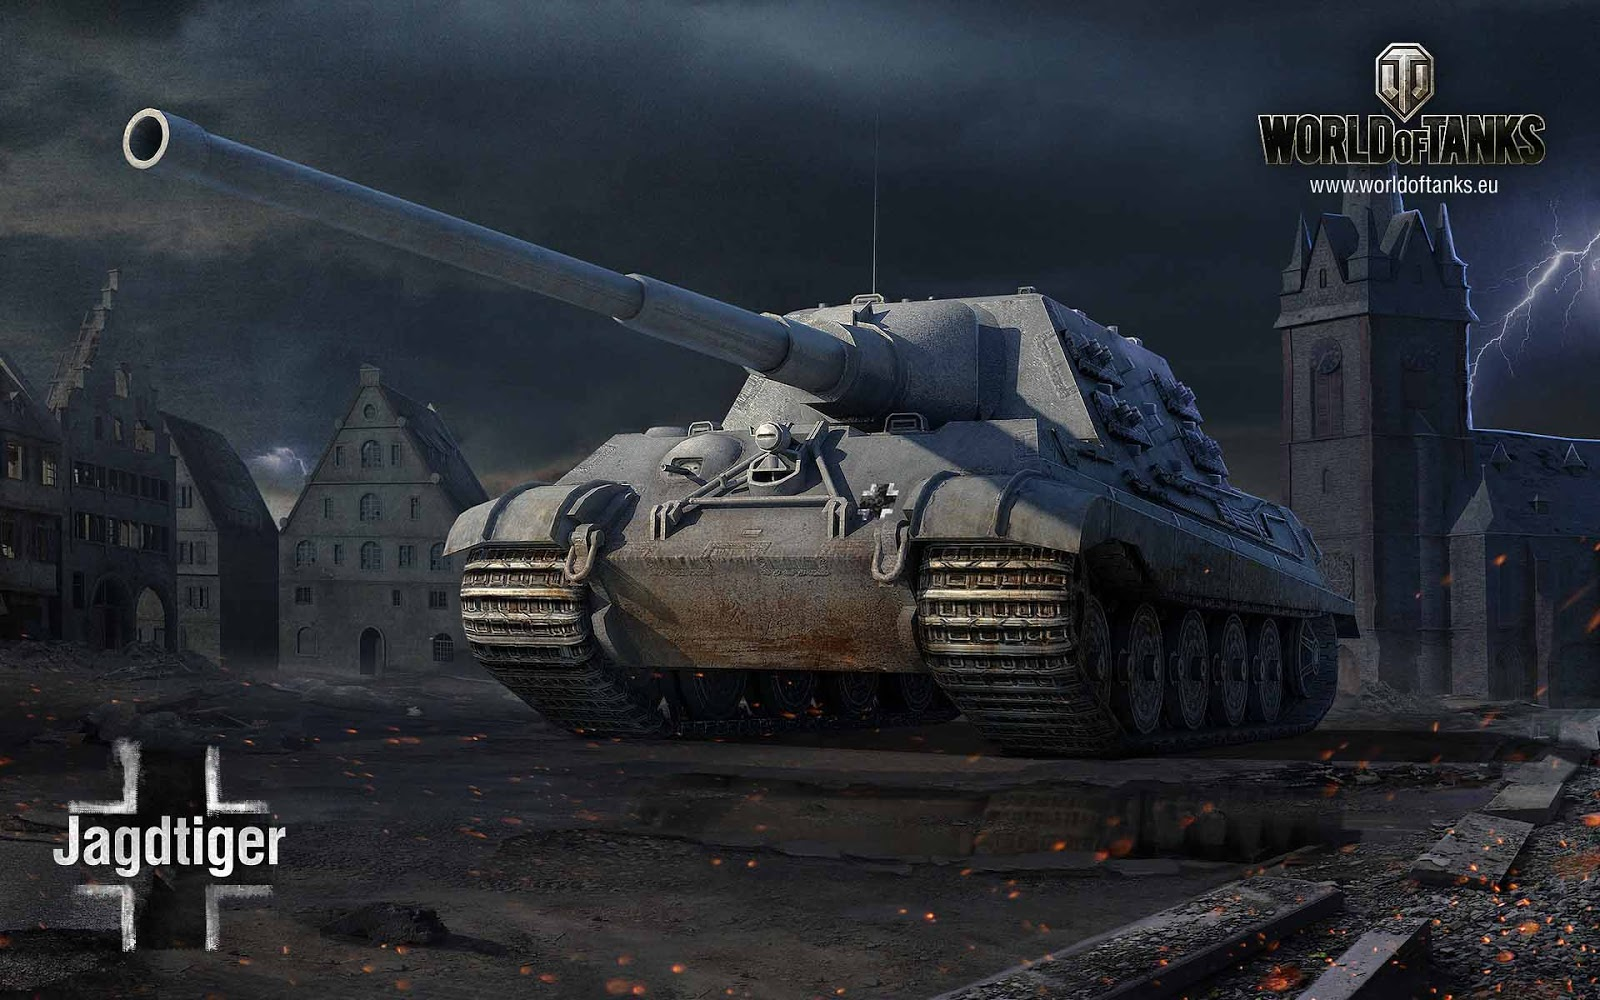 FREE LOOK: World of Tanks Online Wallpapers